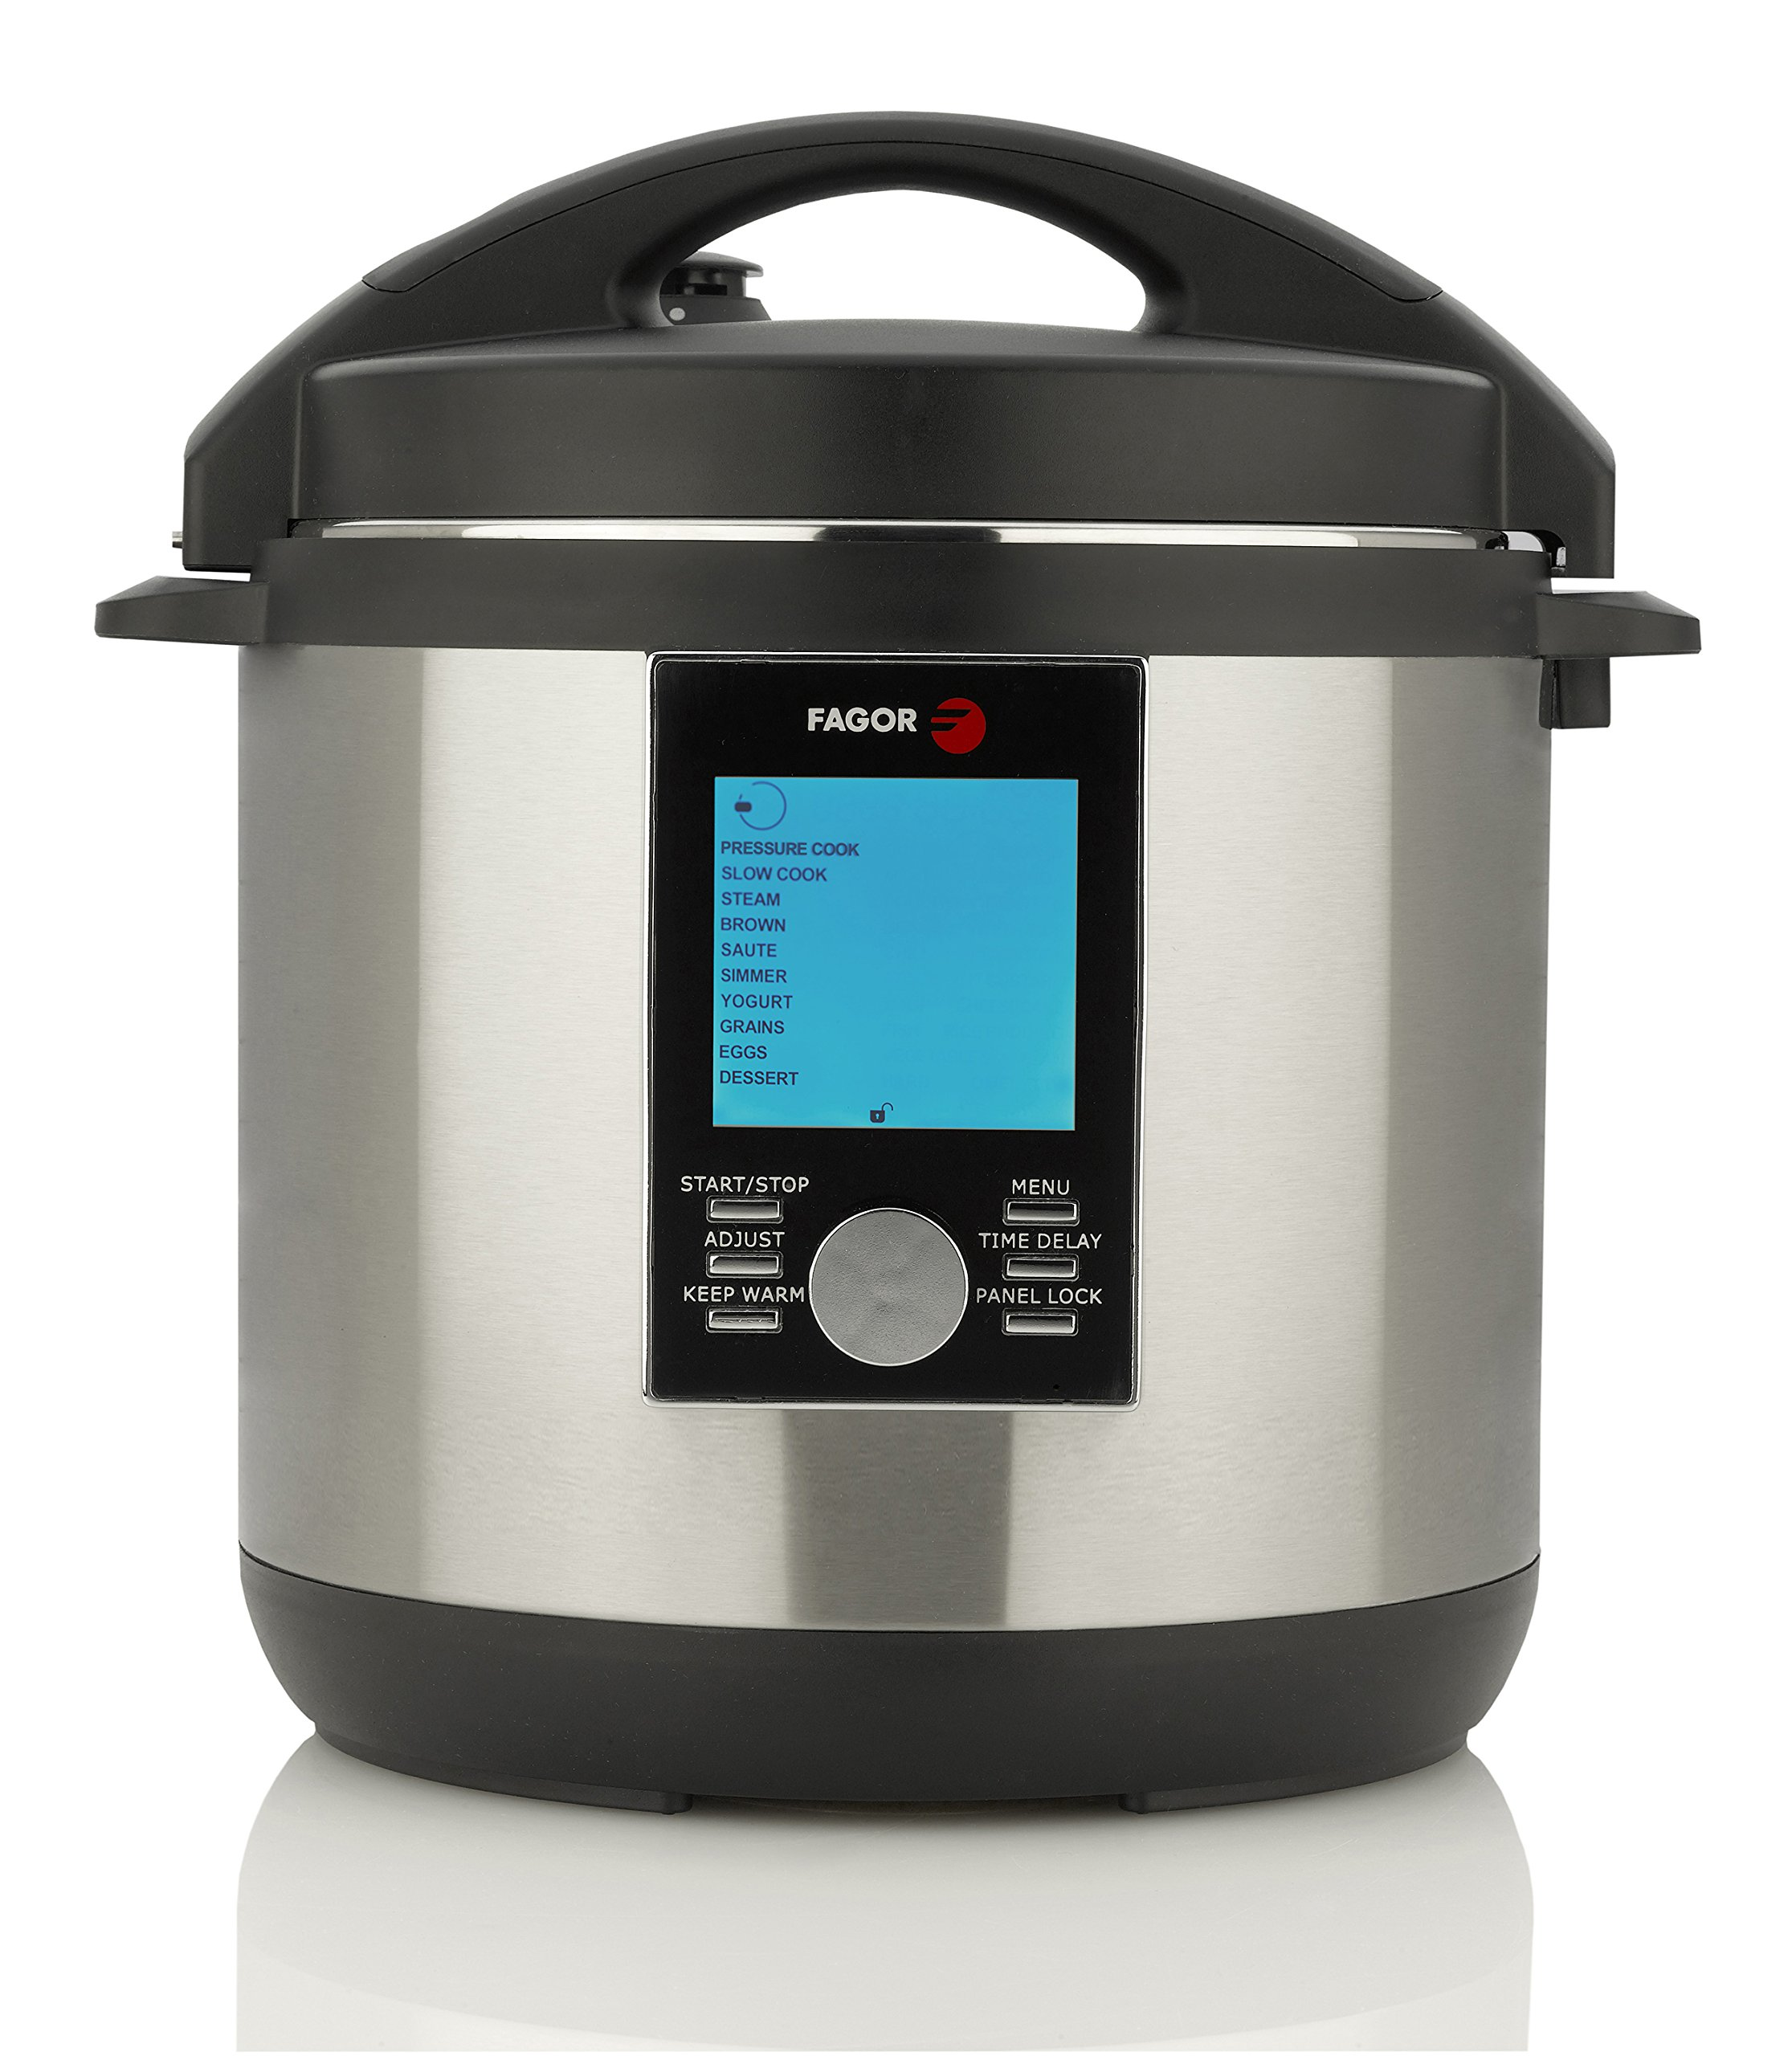 Fagor LUX LCD Multi-Cooker, 8 Quart - Digital Pressure Cooker, Slow Cooker, Rice Cooker and Yogurt Maker with 33 Cooking Programs - Stainless Steel - 935010063 by ASSOIAR (Image #1)